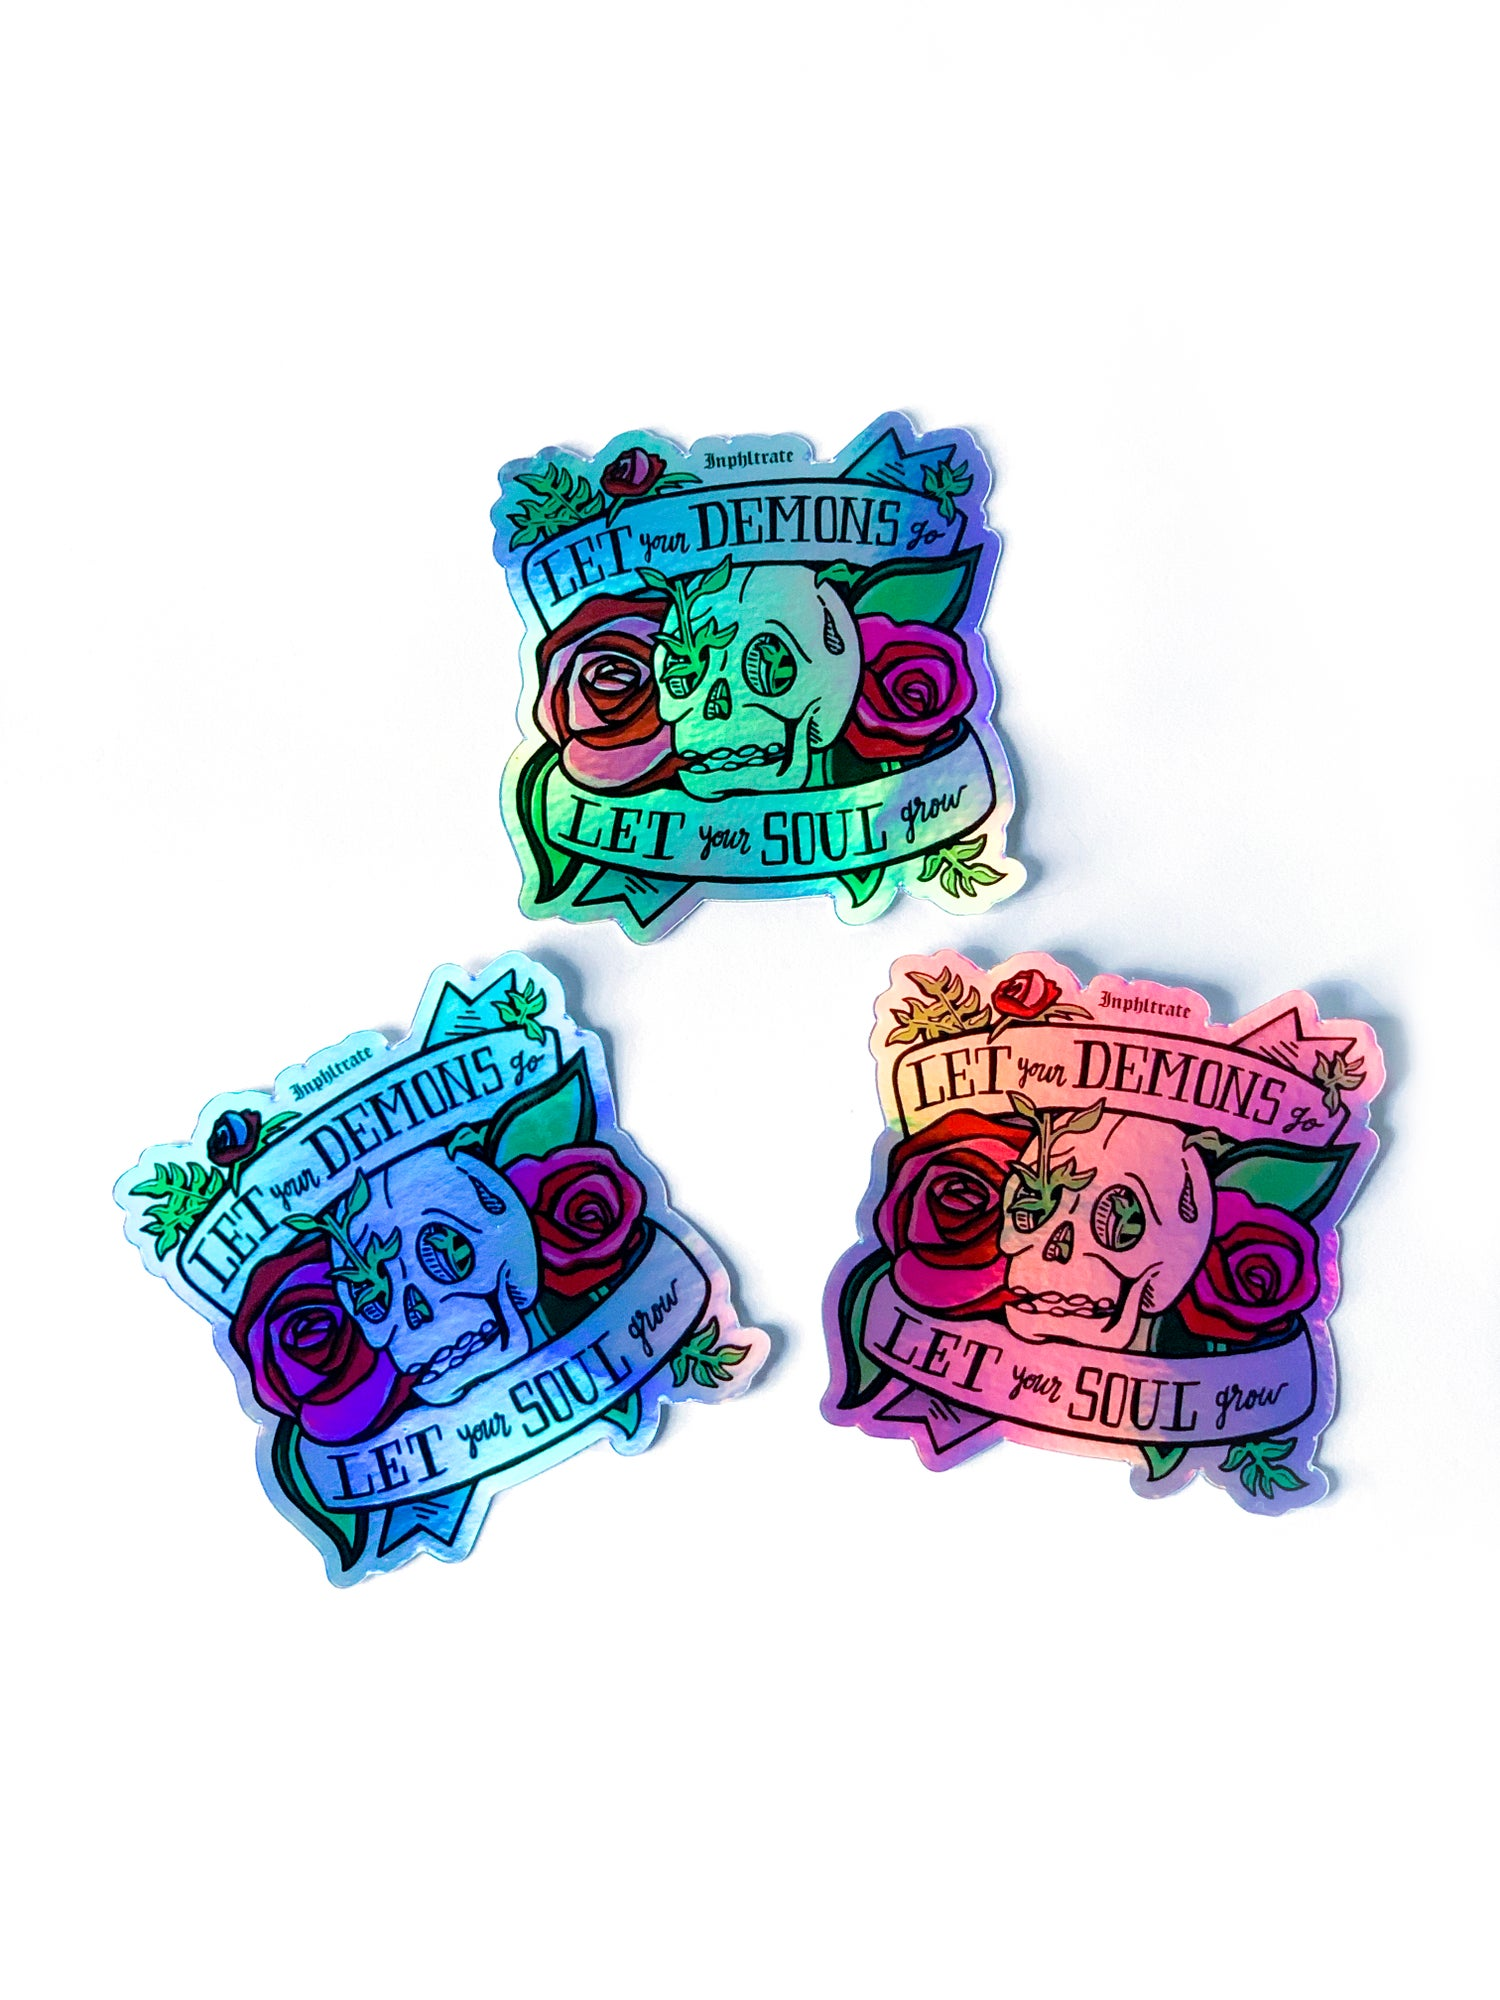 Image of Let Your Demons Go ~ Let Your Soul Grow Holographic Sticker Pack